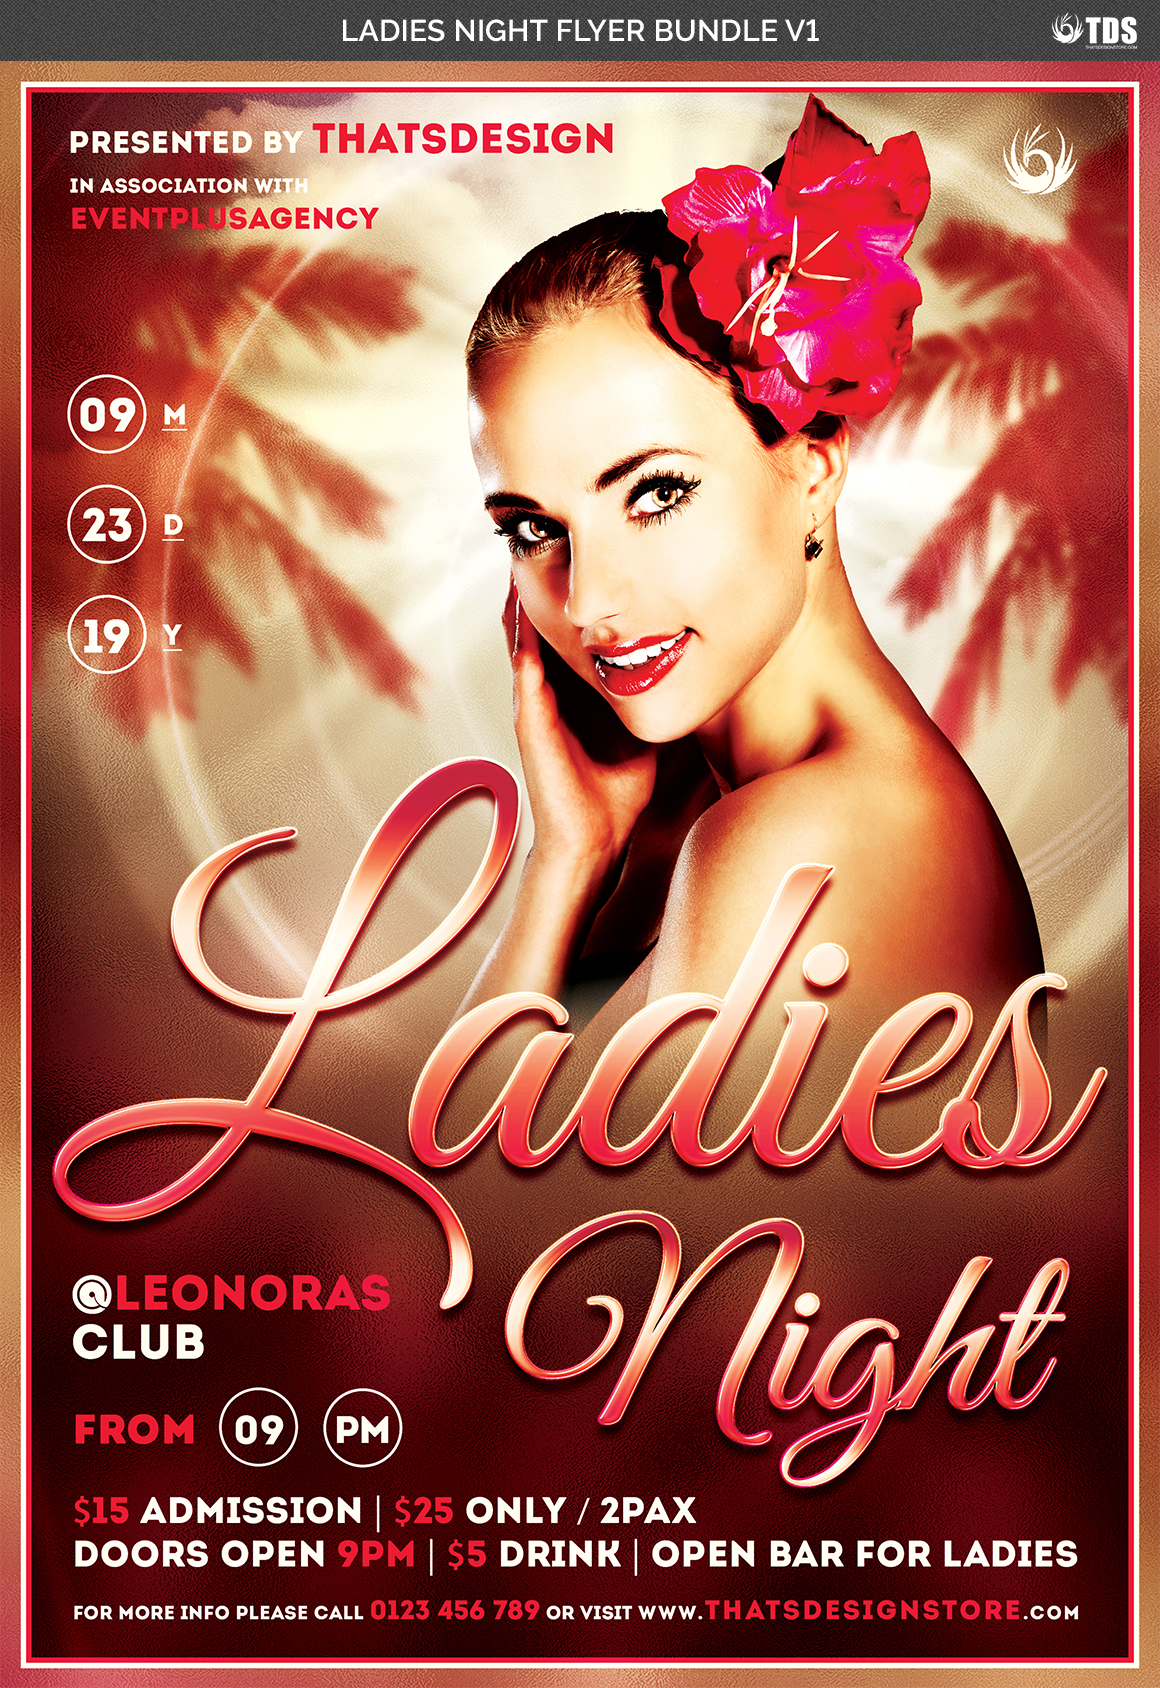 Ladies Night Flyer Bundle V1 example image 6